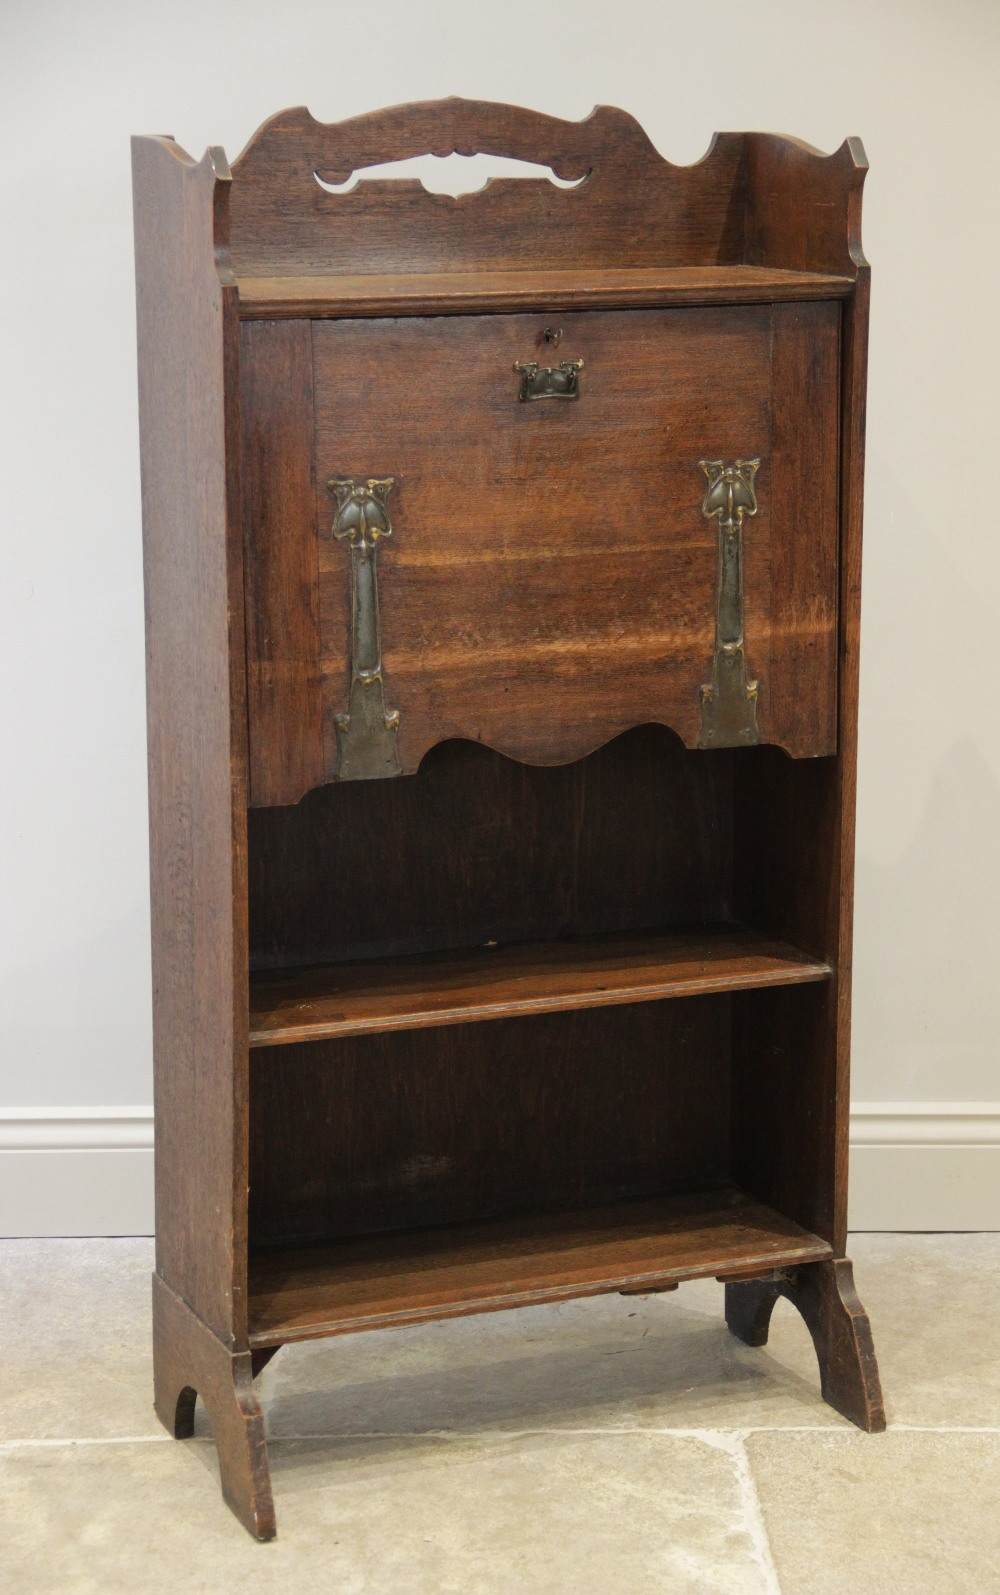 An early 20th century oak Arts and Crafts Glasgow school students bureau, the open work galleried